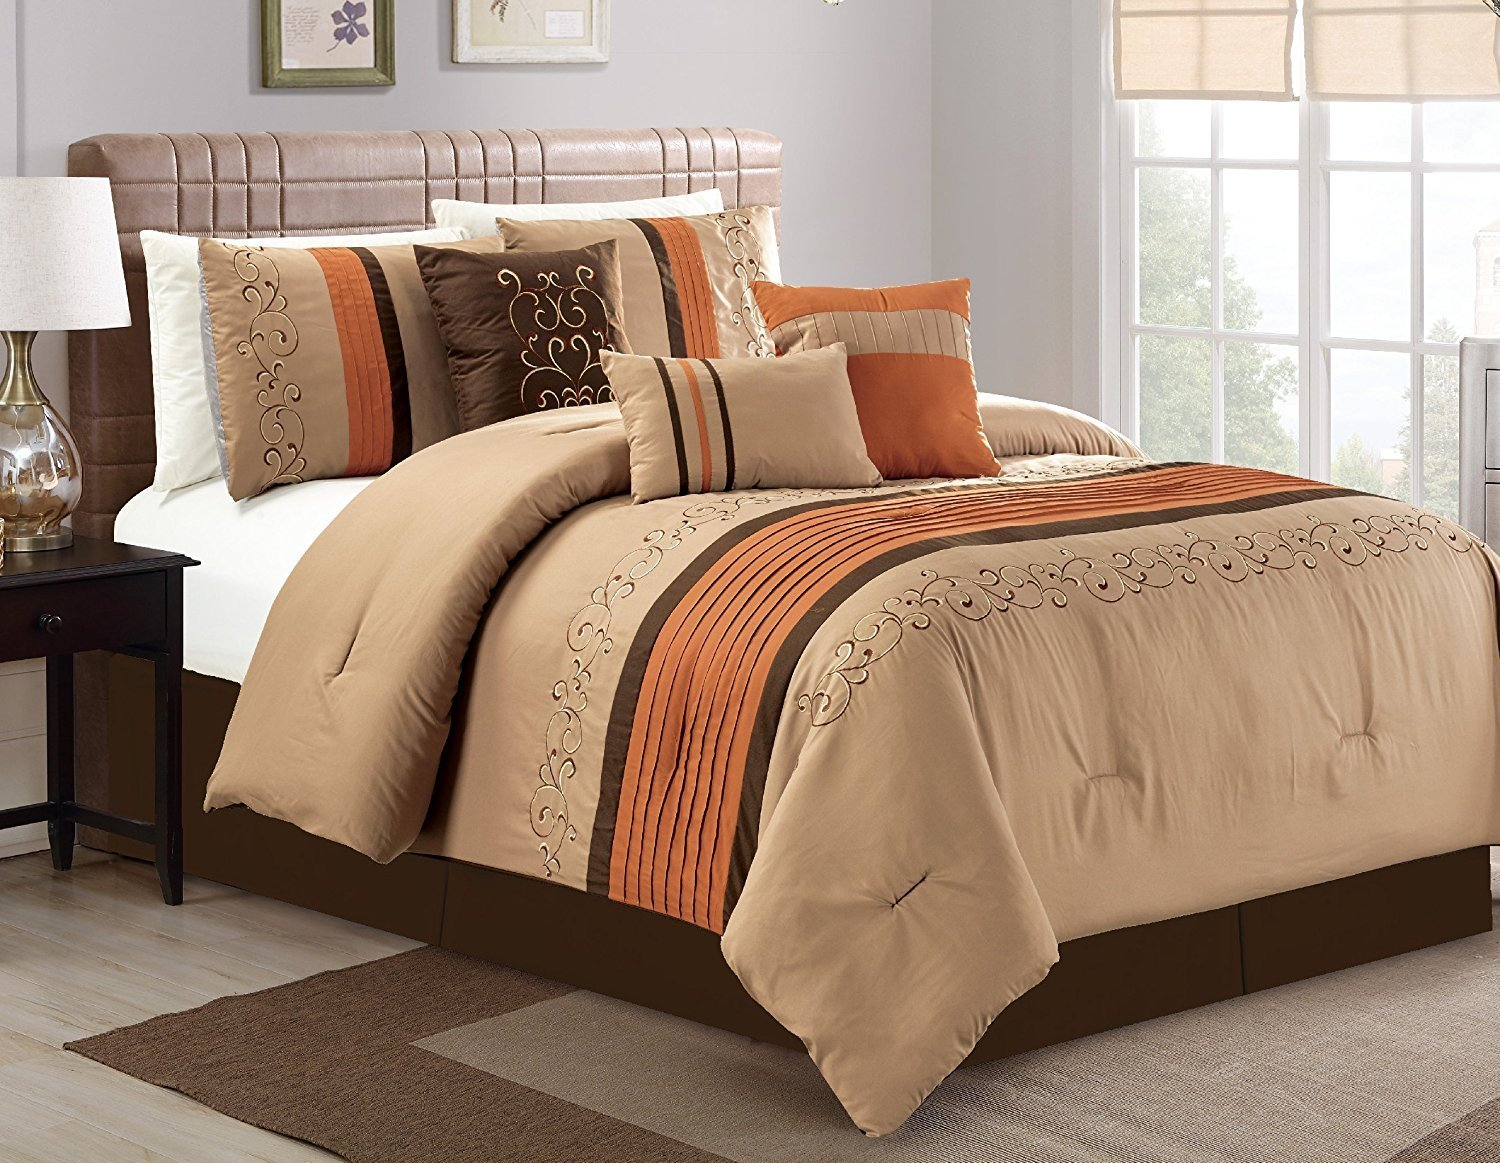 Luxlen 7 Piece Luxury Embroidered Bed in Bag Comforter Set, Oversized, Coffee, King